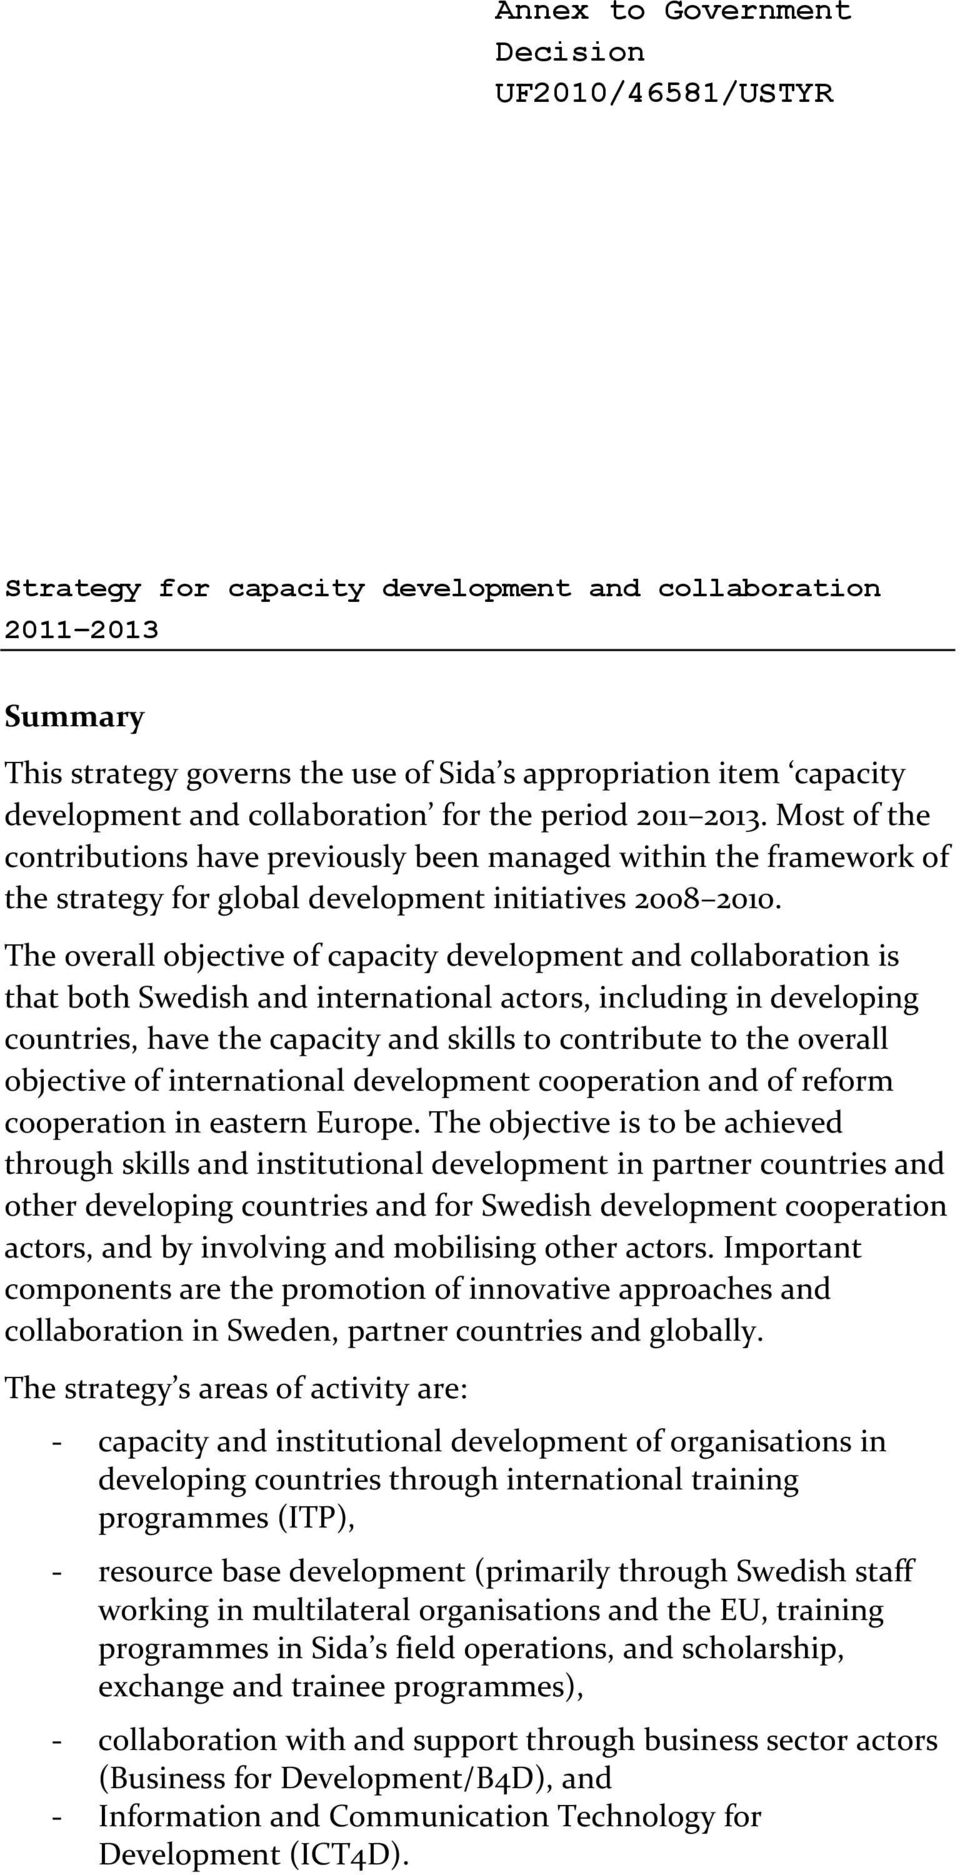 The overall objective of capacity development and collaboration is that both Swedish and international actors, including in developing countries, have the capacity and skills to contribute to the